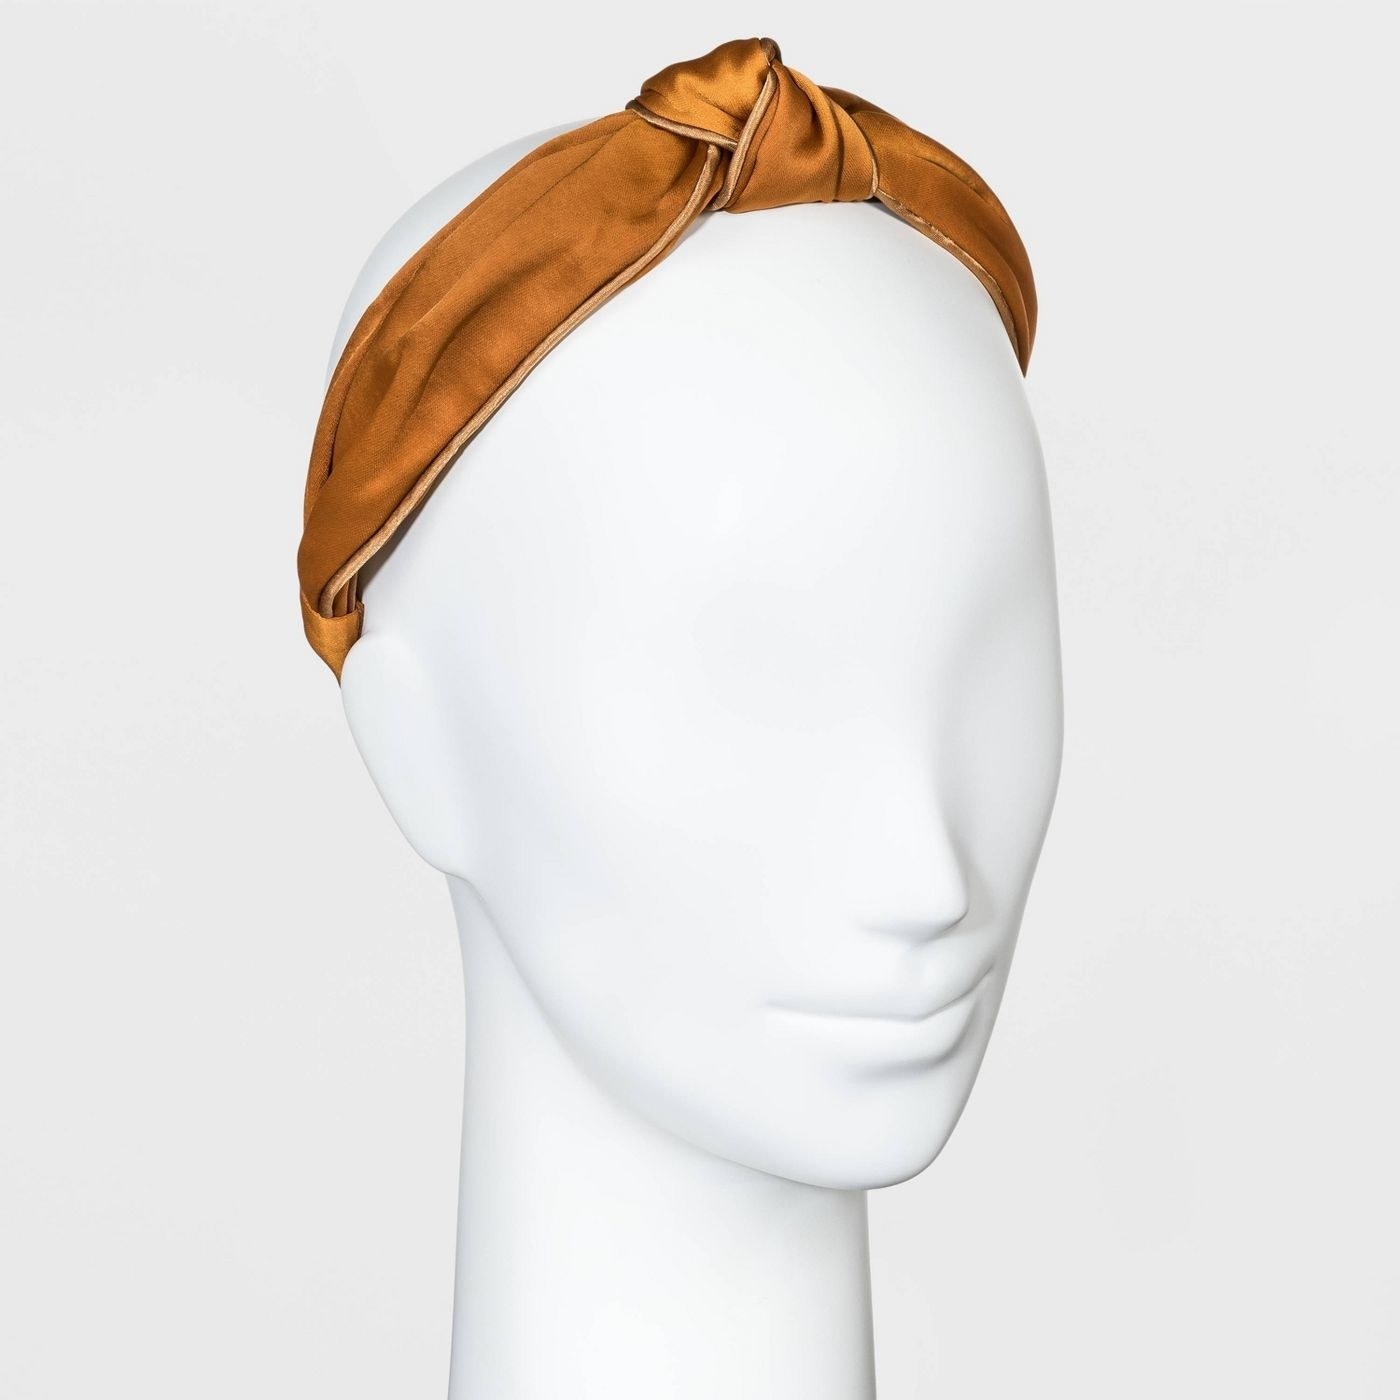 Satin knot with piped trim headband